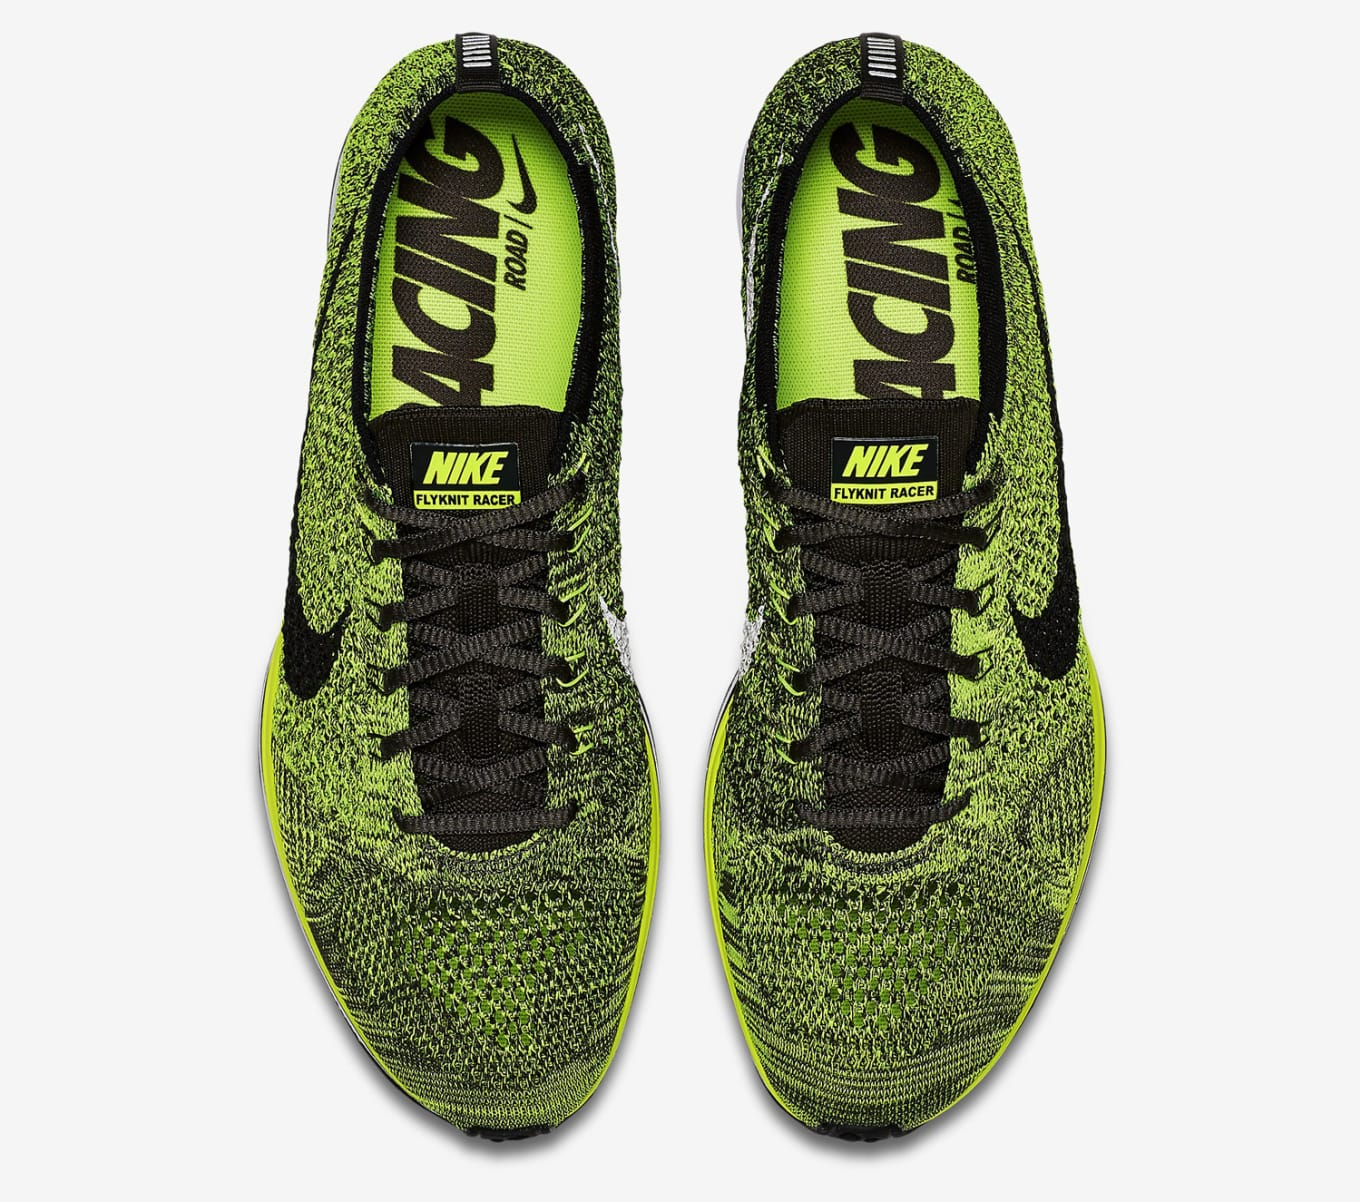 buy online 9cb8a 444b3 New Flyknit Racers releasing in 2016 with a familiar colorway.